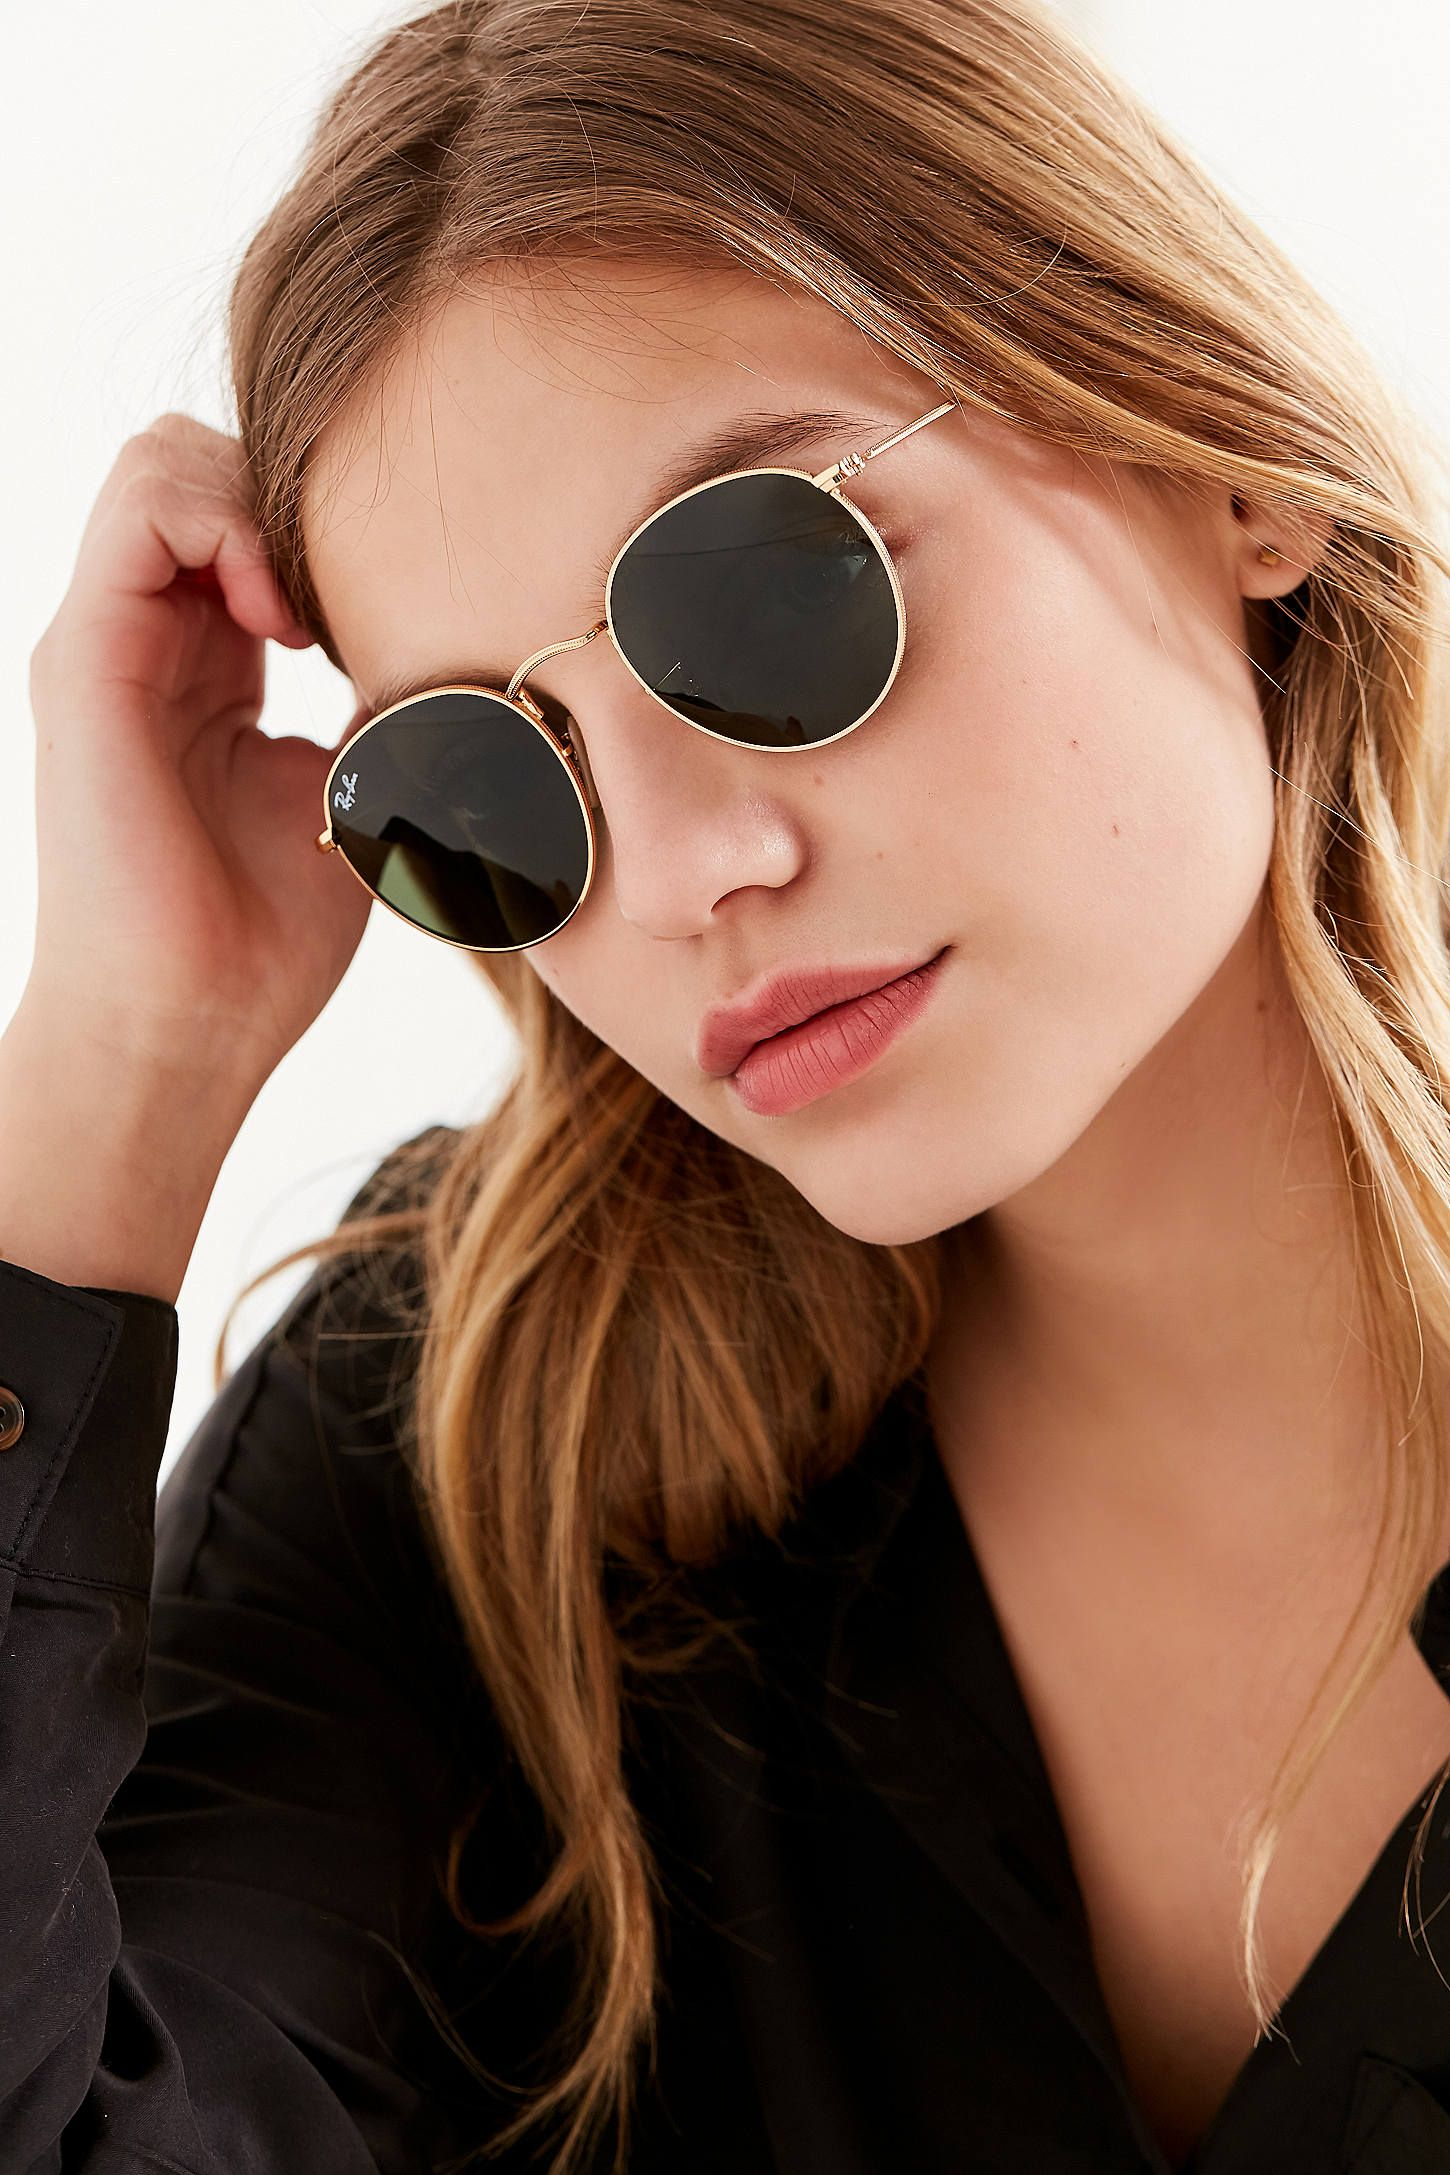 41317151dc7db Shop Ray-Ban Round Metal Classic Sunglasses at Urban Outfitters today. We  carry all the latest styles